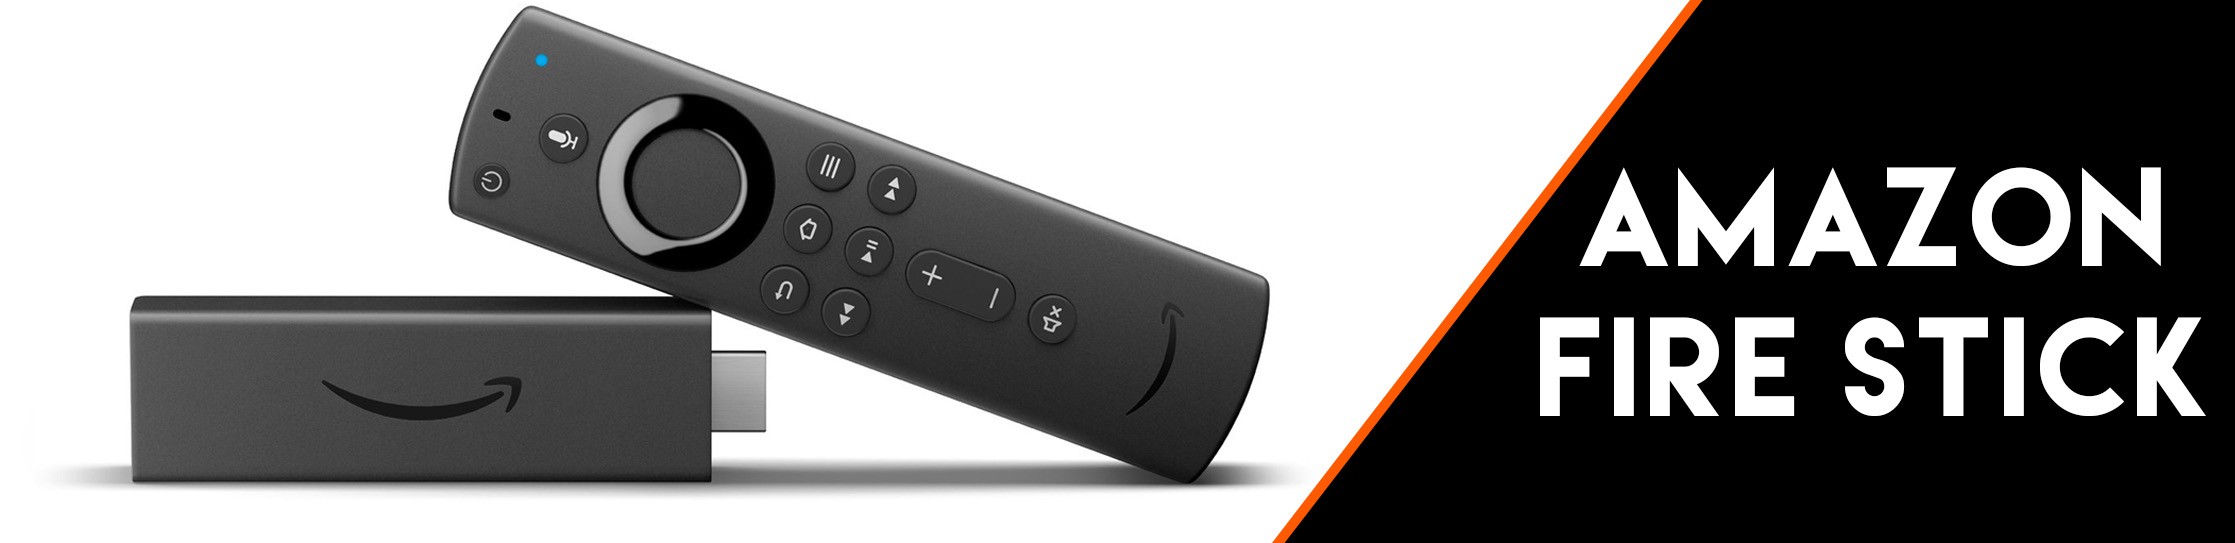 Amazon Fire Stick 4k